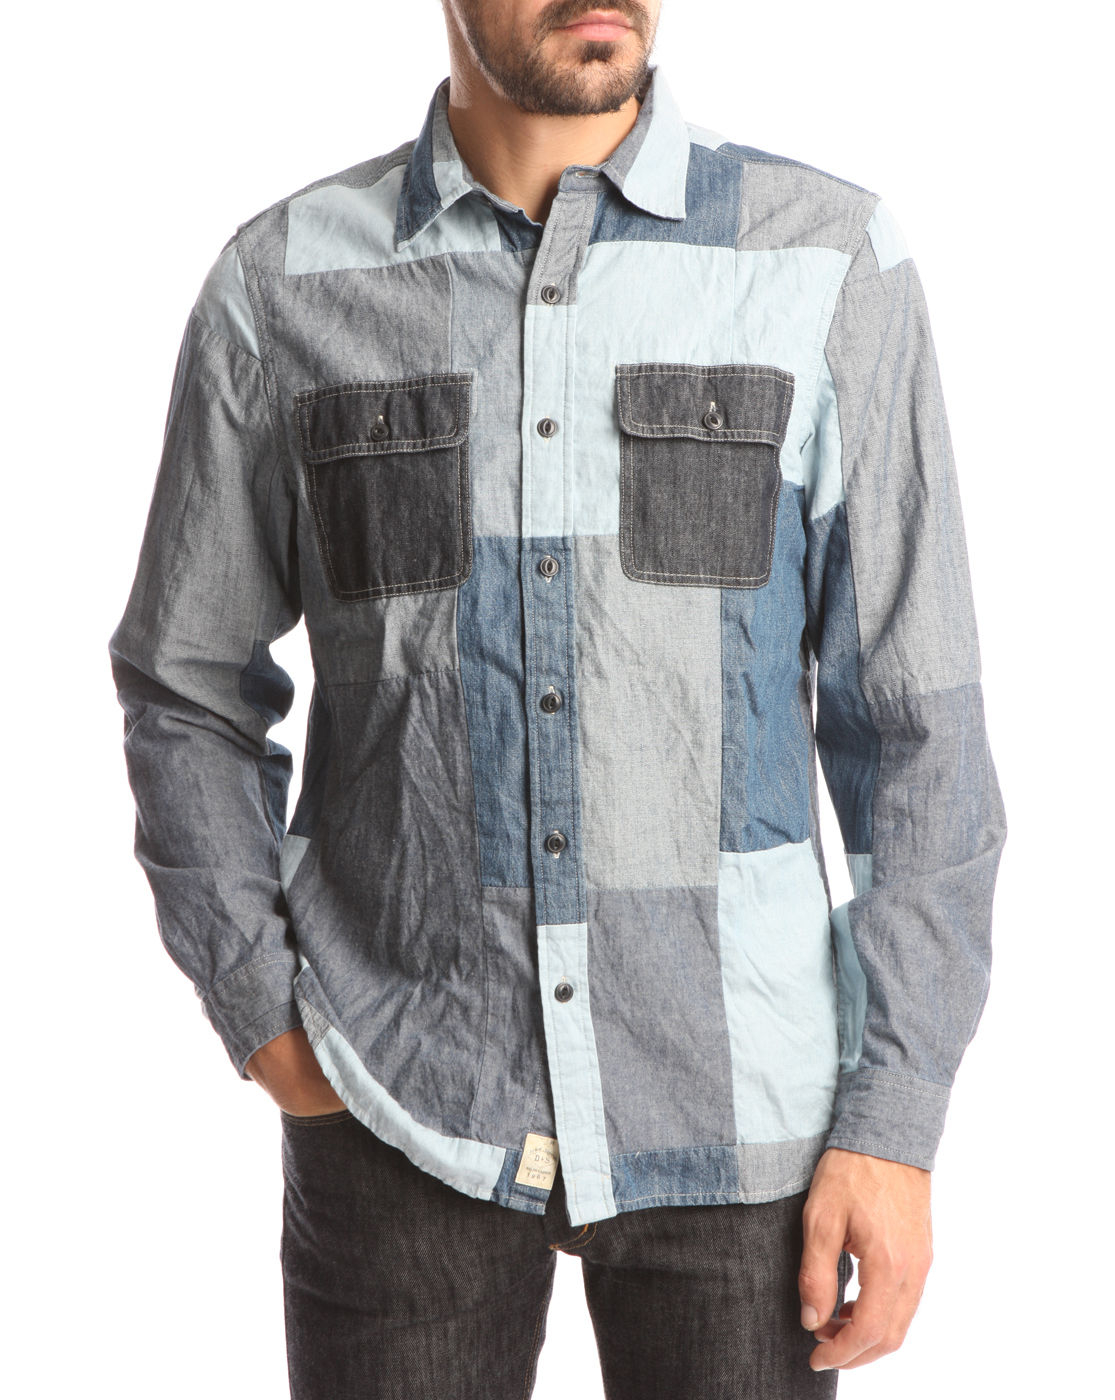 denim supply ralph lauren blue patchwork shirt in blue for men lyst. Black Bedroom Furniture Sets. Home Design Ideas